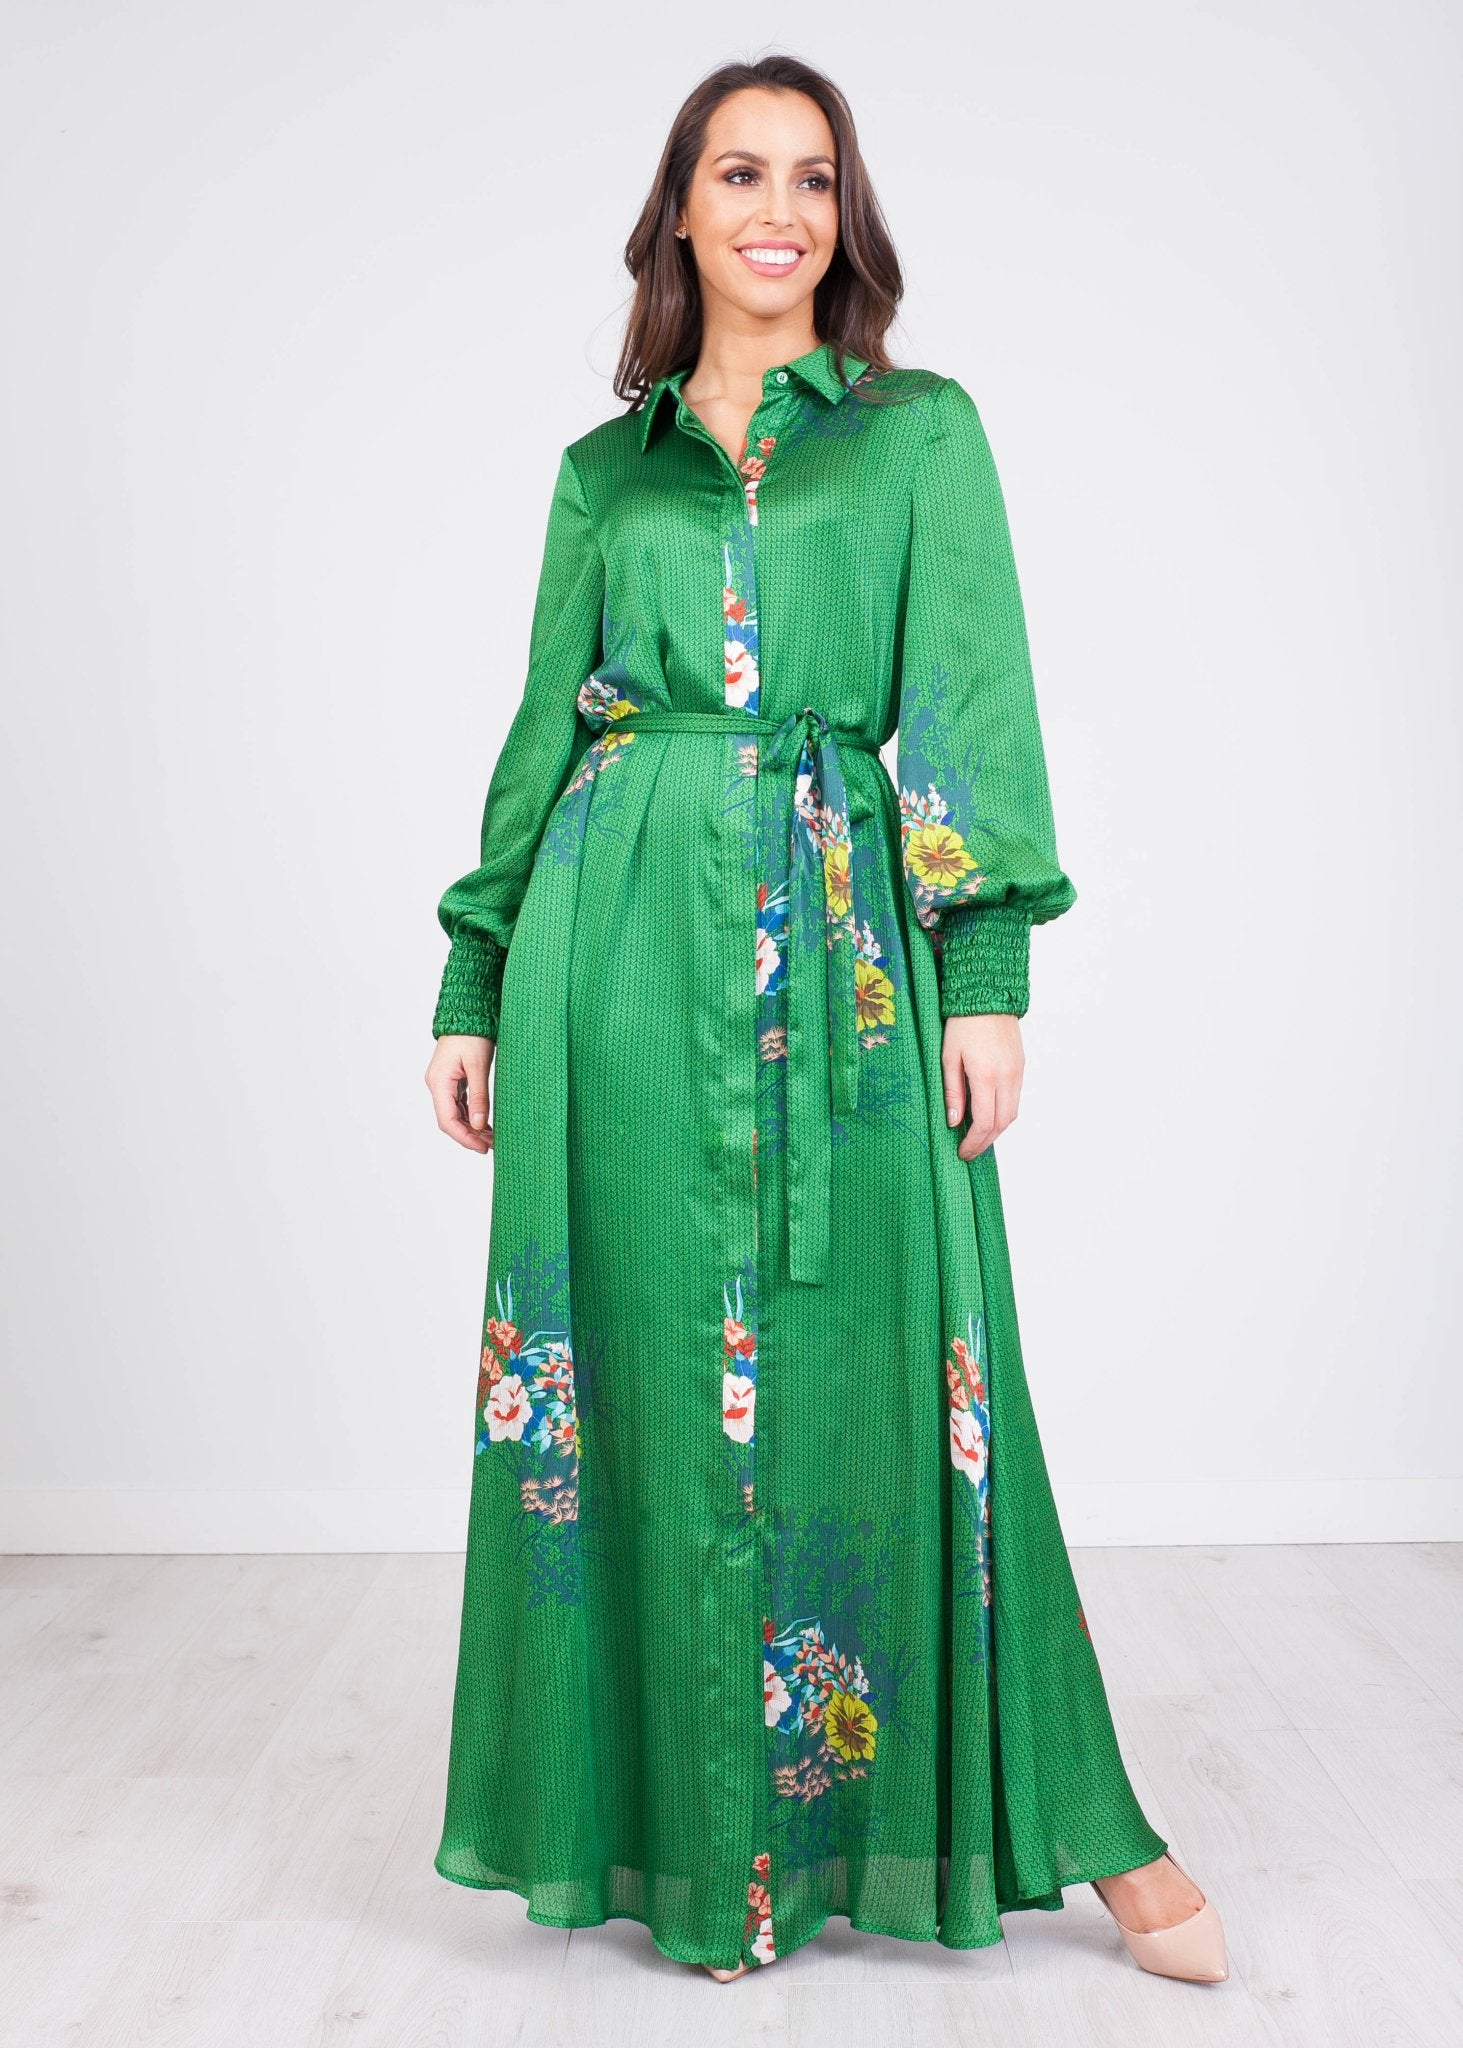 Sophia Green Floral Dress - The Walk in Wardrobe